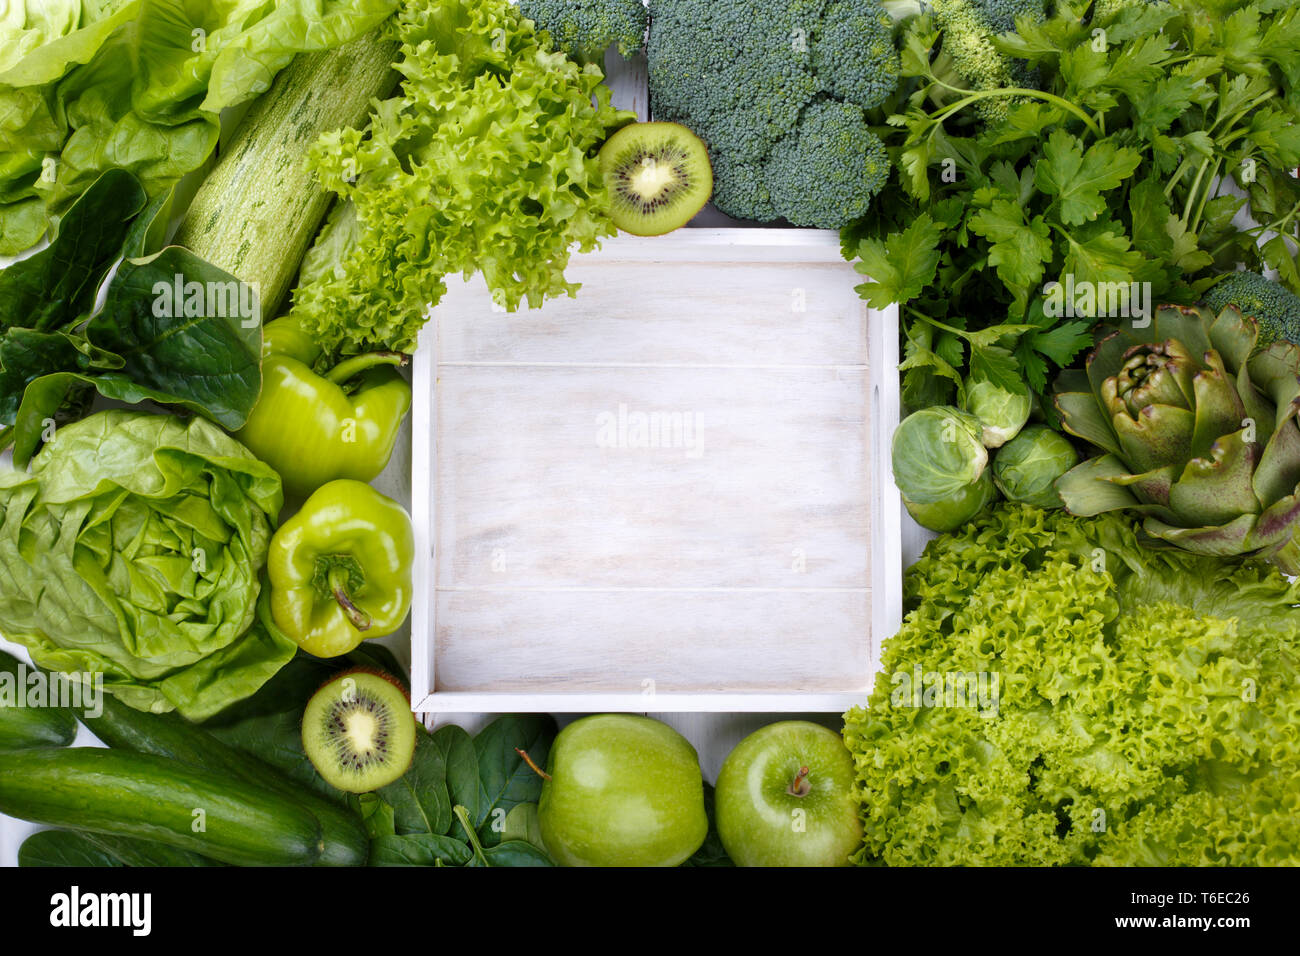 Mix Of Green Fruits And Vegetables Stock Photo 244949886 Alamy